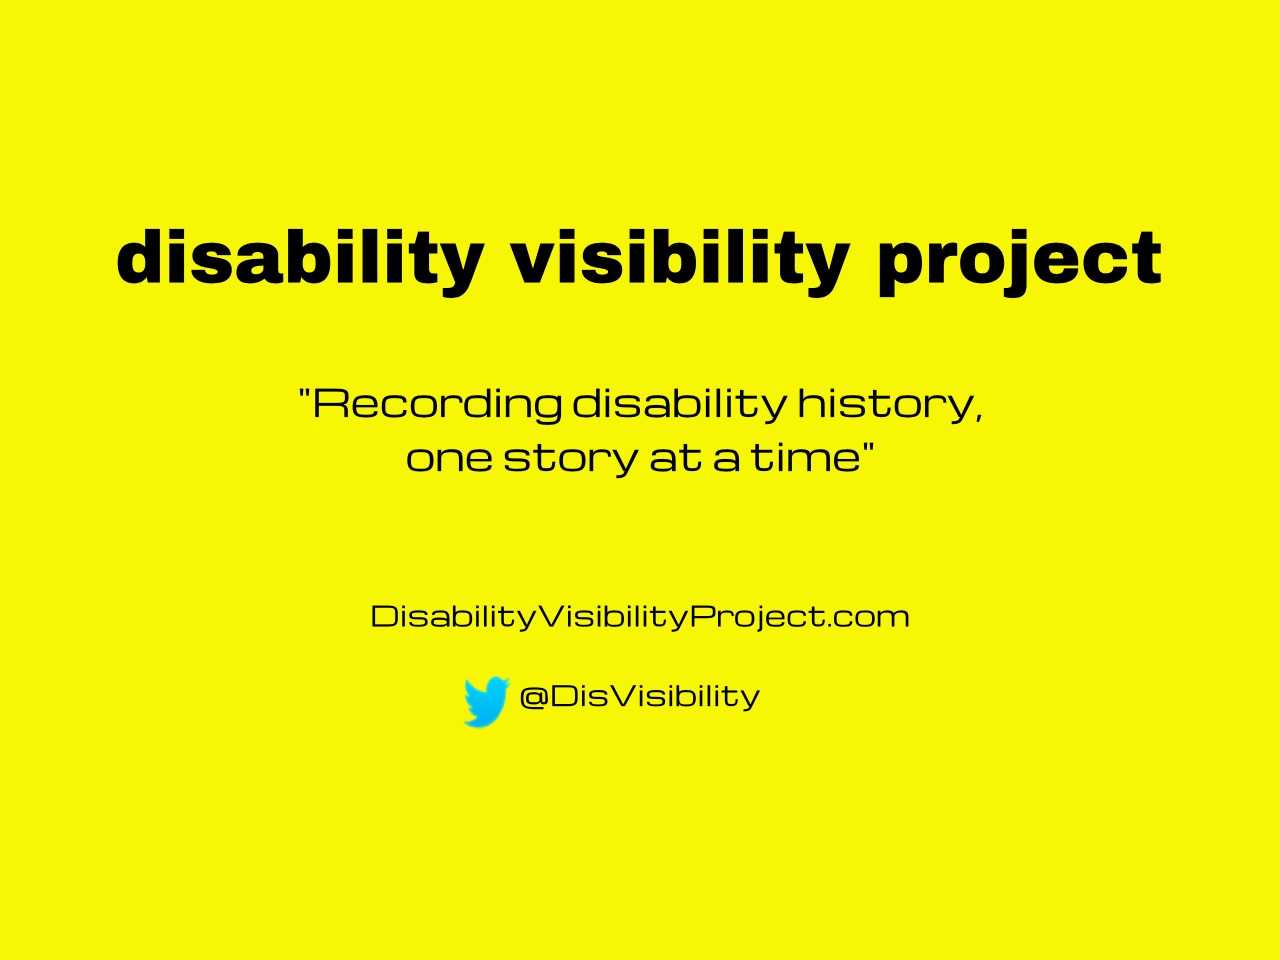 "Bright yellow background with black text centered in the image that reads: disability visibility project, ""Recording disability history, one story at a time"" DisabilityVisibilityProject.com, Twitter bird icon, @DisVisibility"